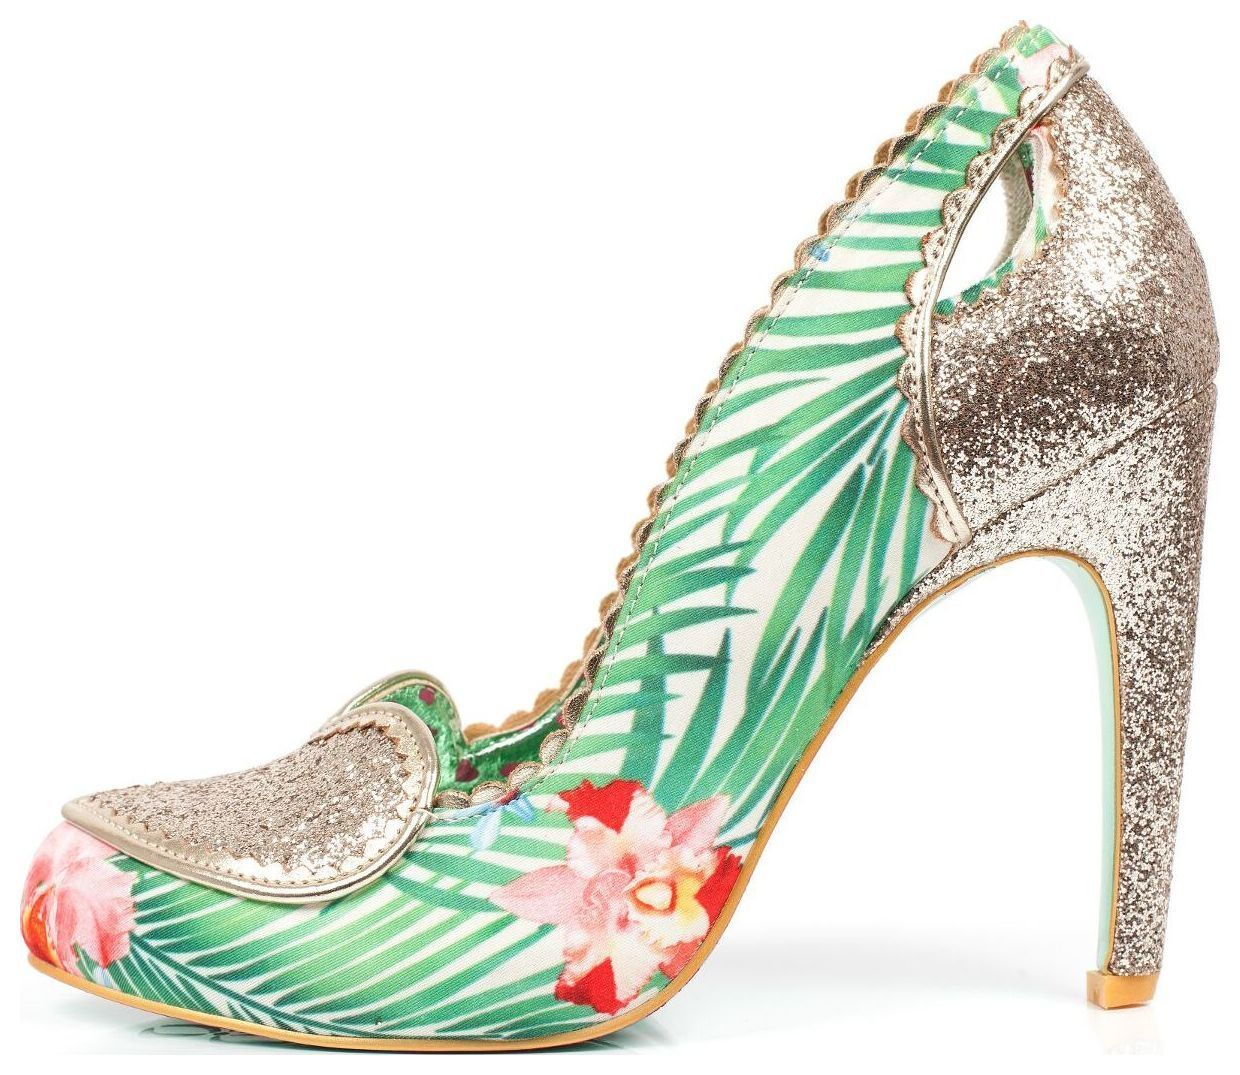 Descuento barato Poetic Licence by Irregular Choice Loren Love Gold Multi Shoes - EU 38 - 40